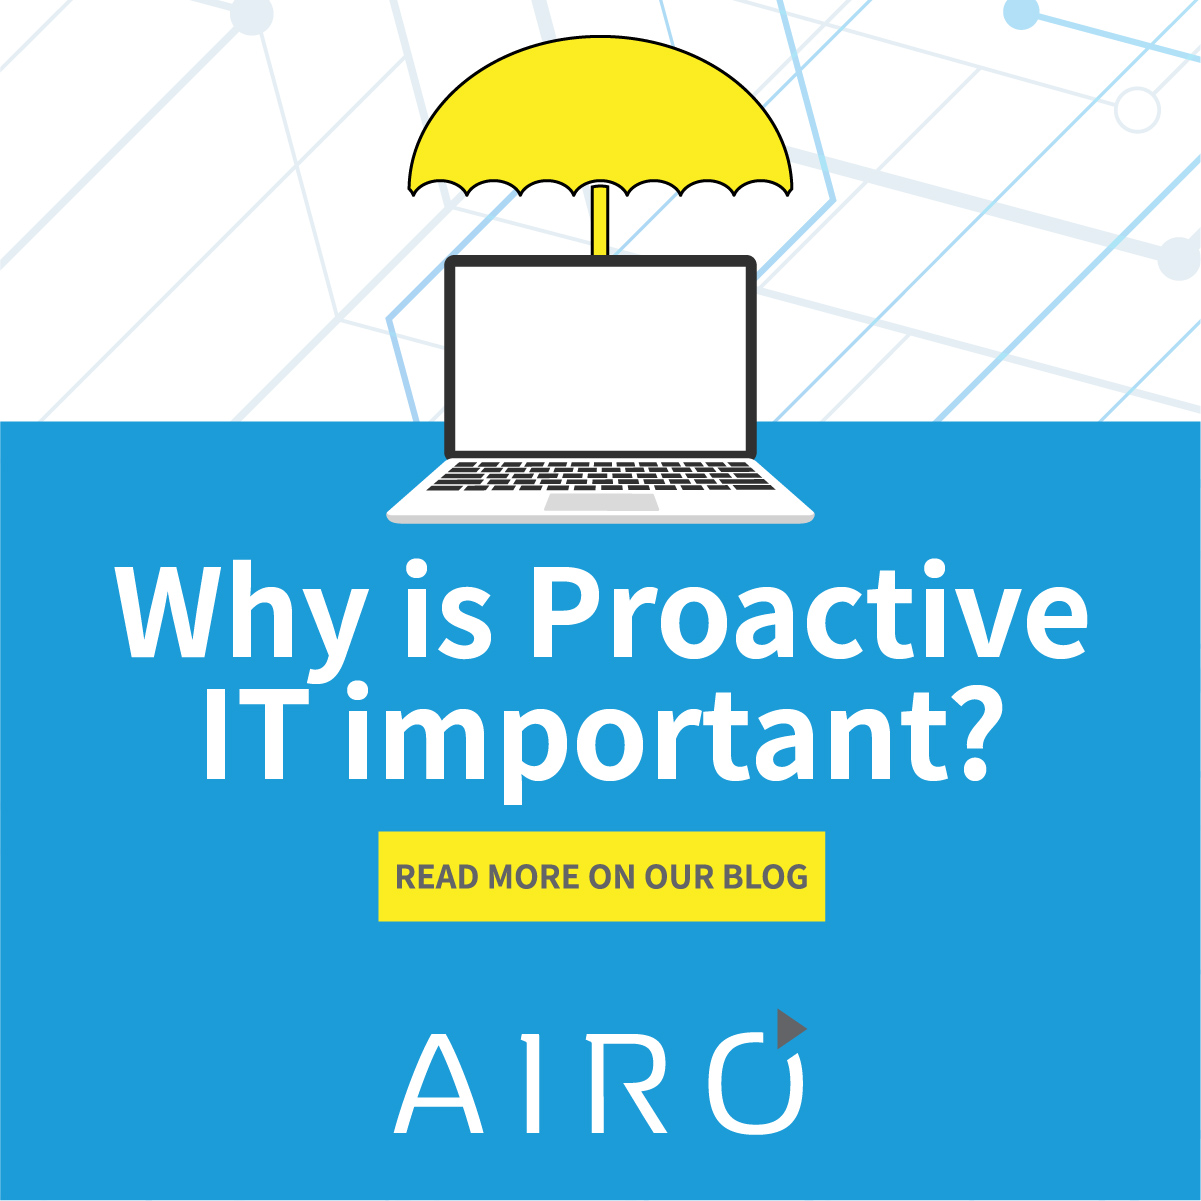 Why is Proactive IT Important?